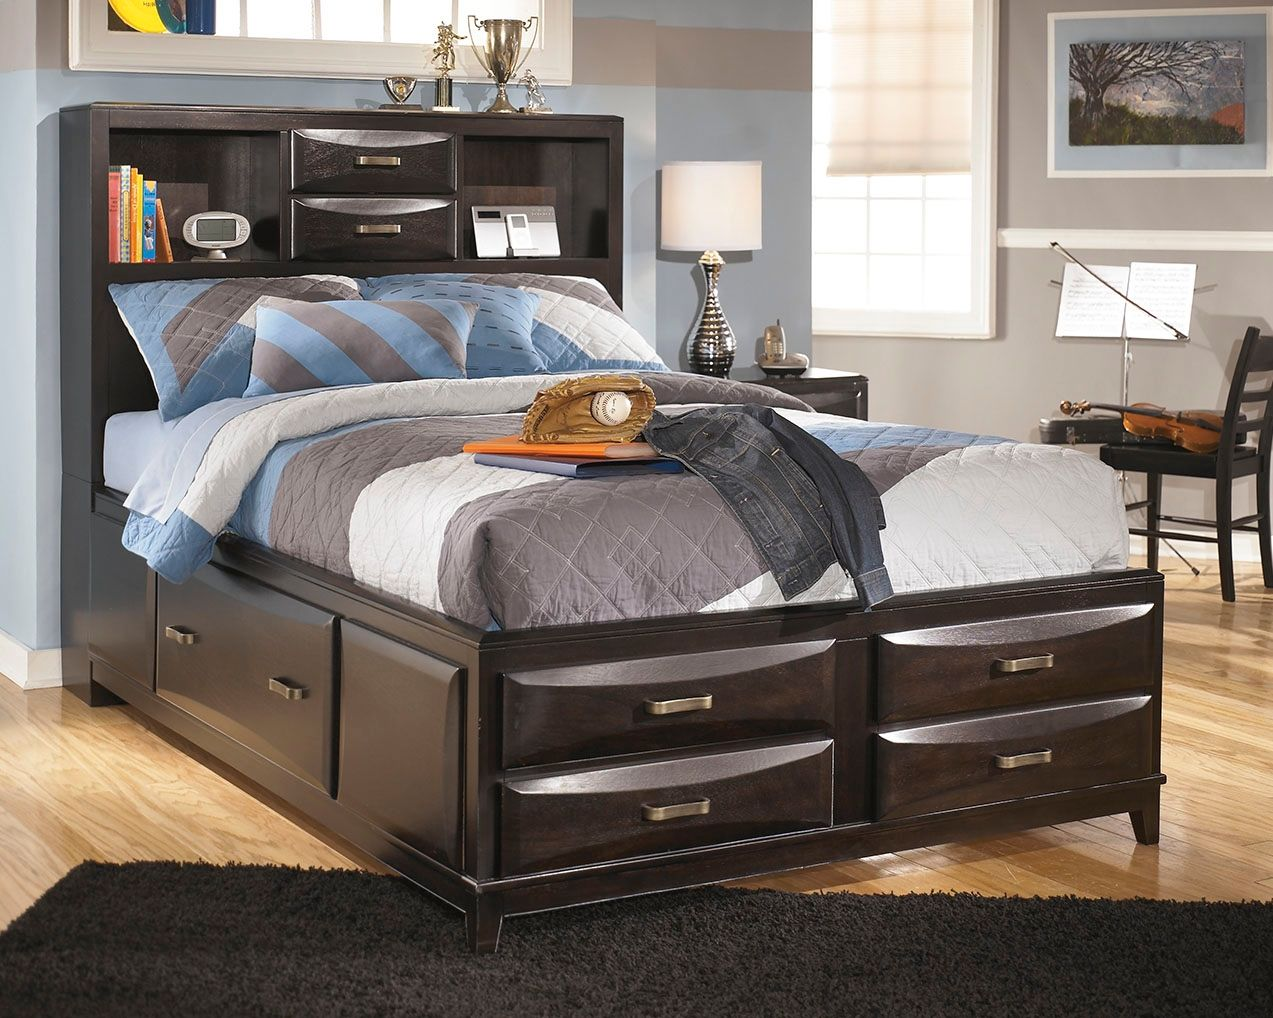 Kira Full Storage Bed With 7 Drawers Full Bed With Storage Bed